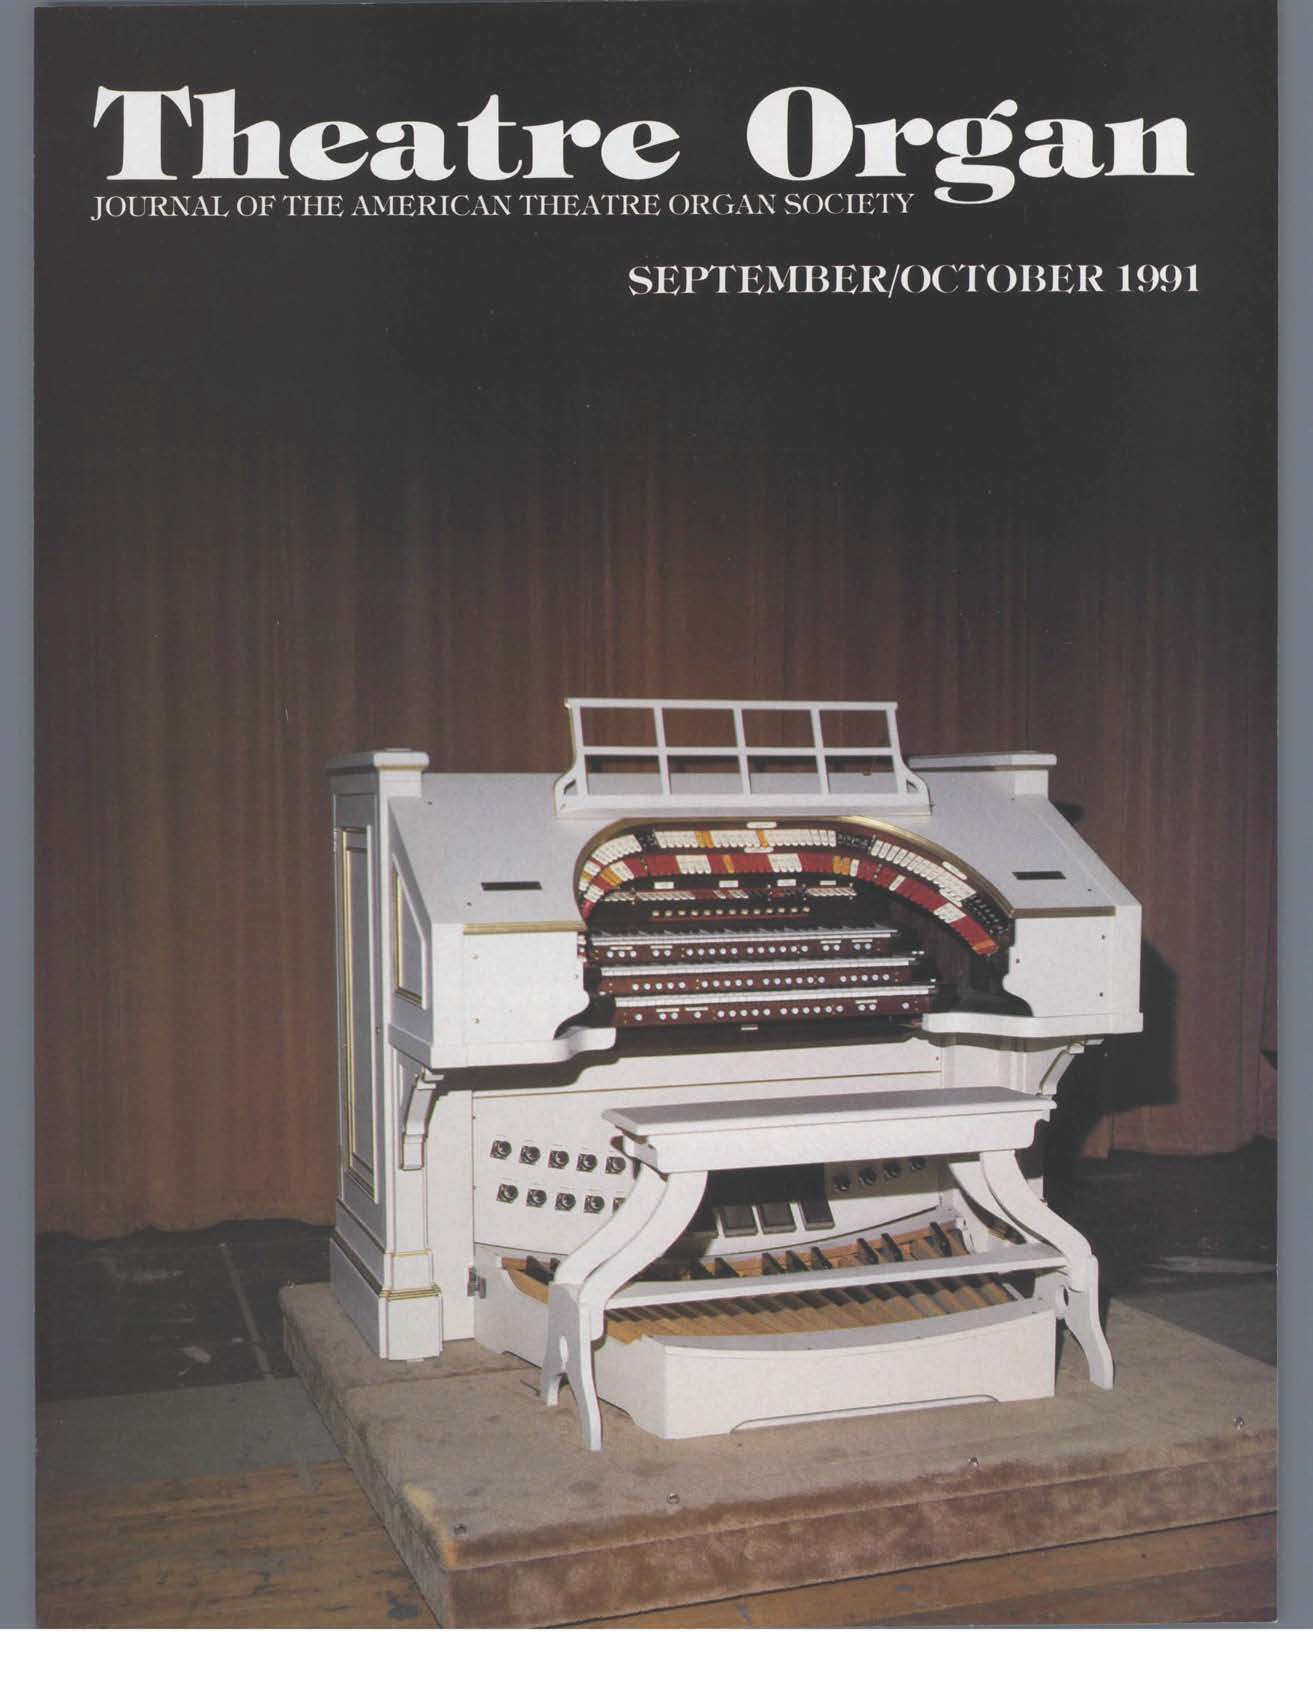 Theatre Organ, September - October 1991, Volume 33, Number 5